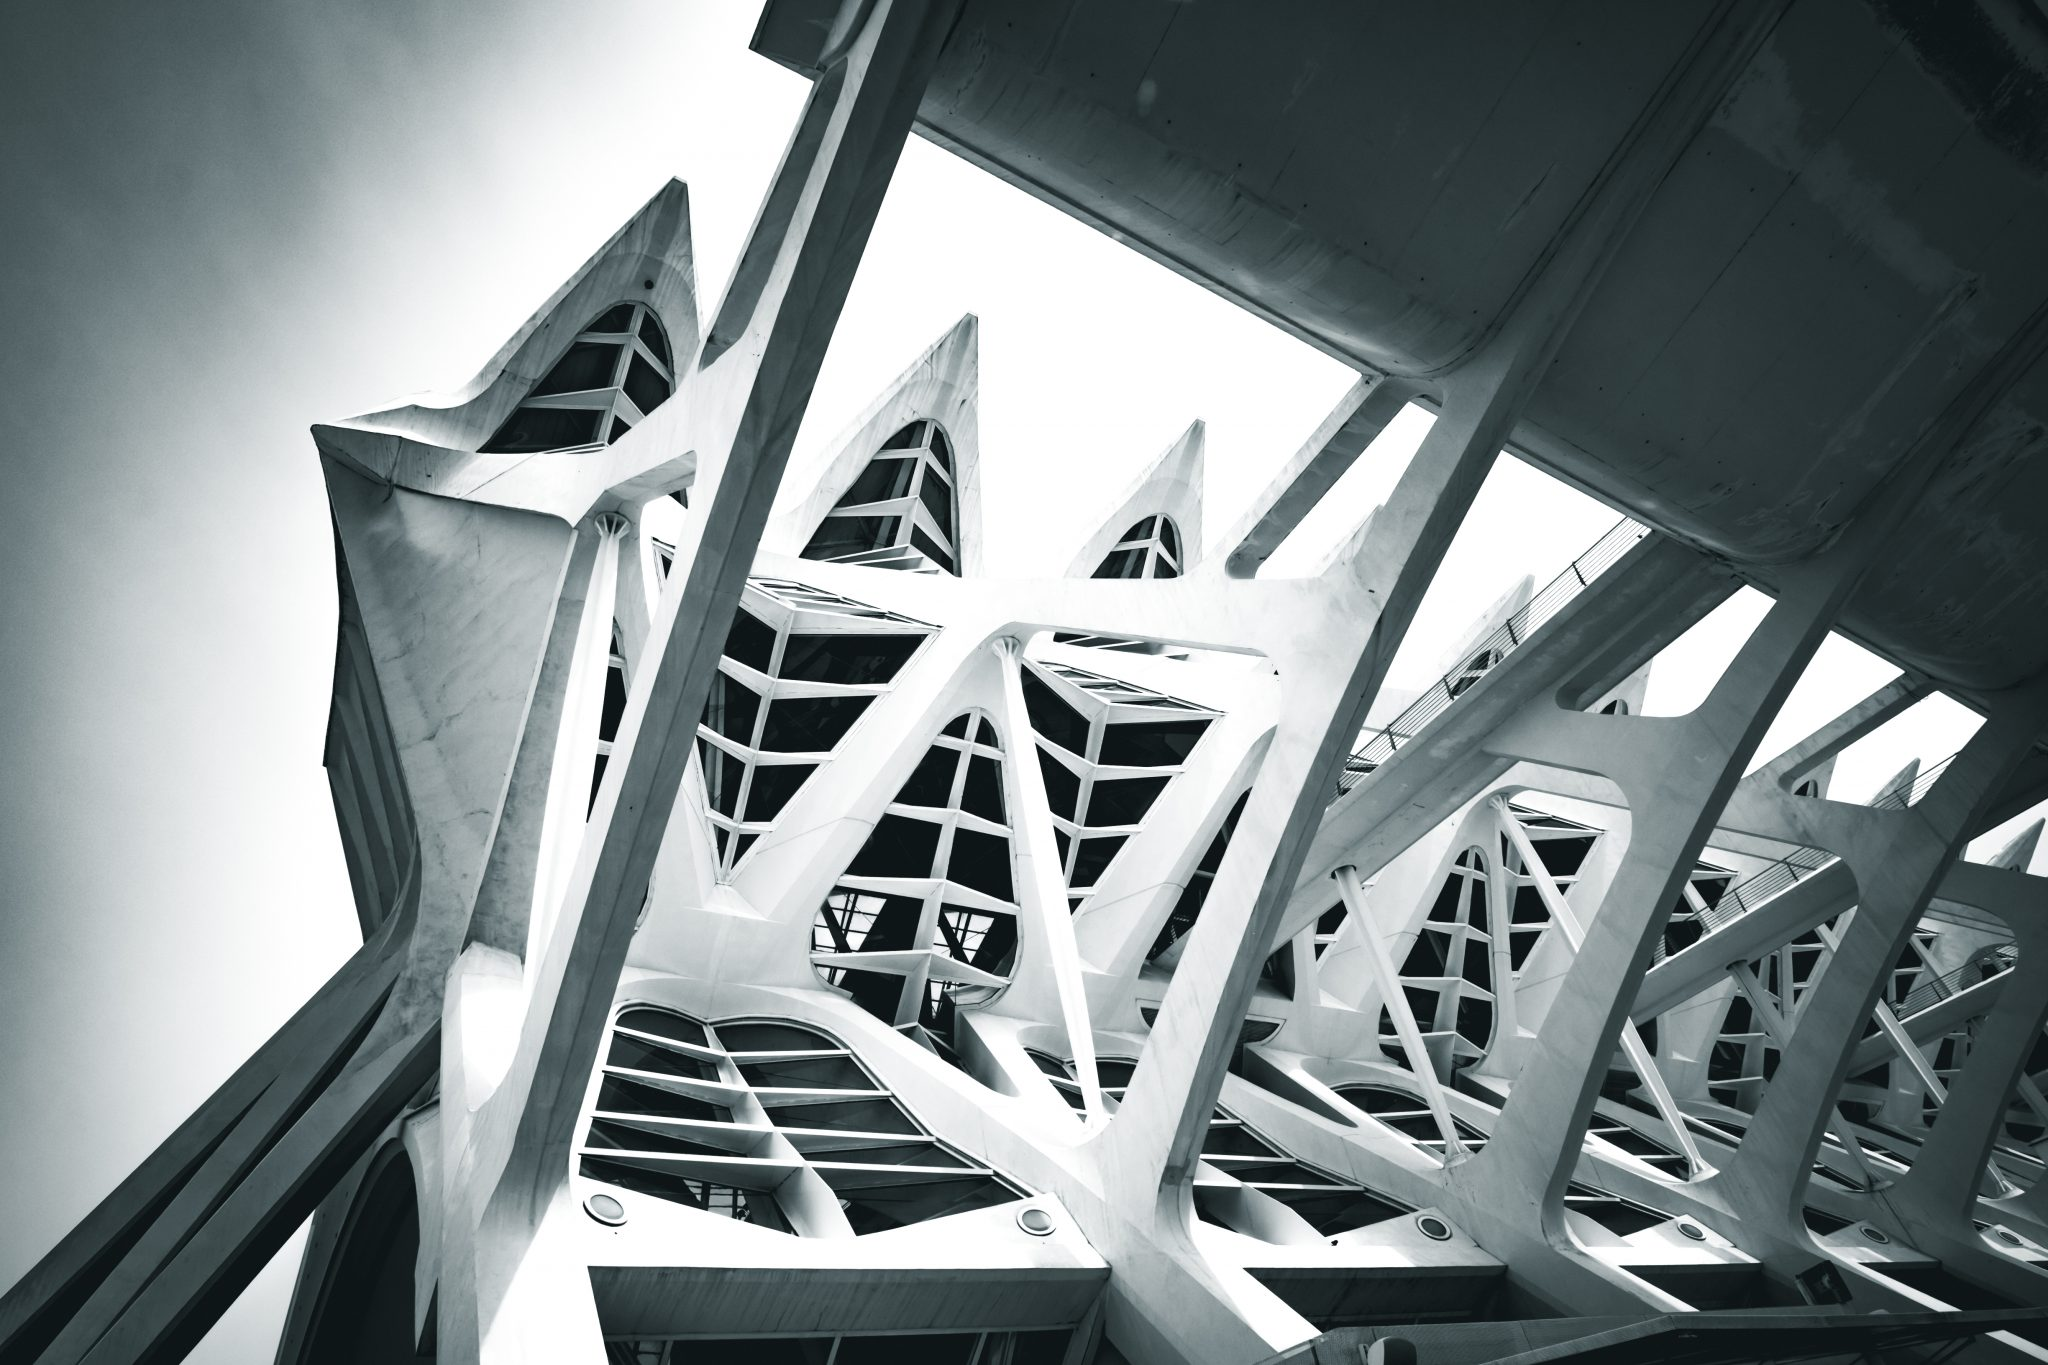 Upward view of the architectural complex The City of Arts and Sciences in the city of Valencia photo by Jo Kassis